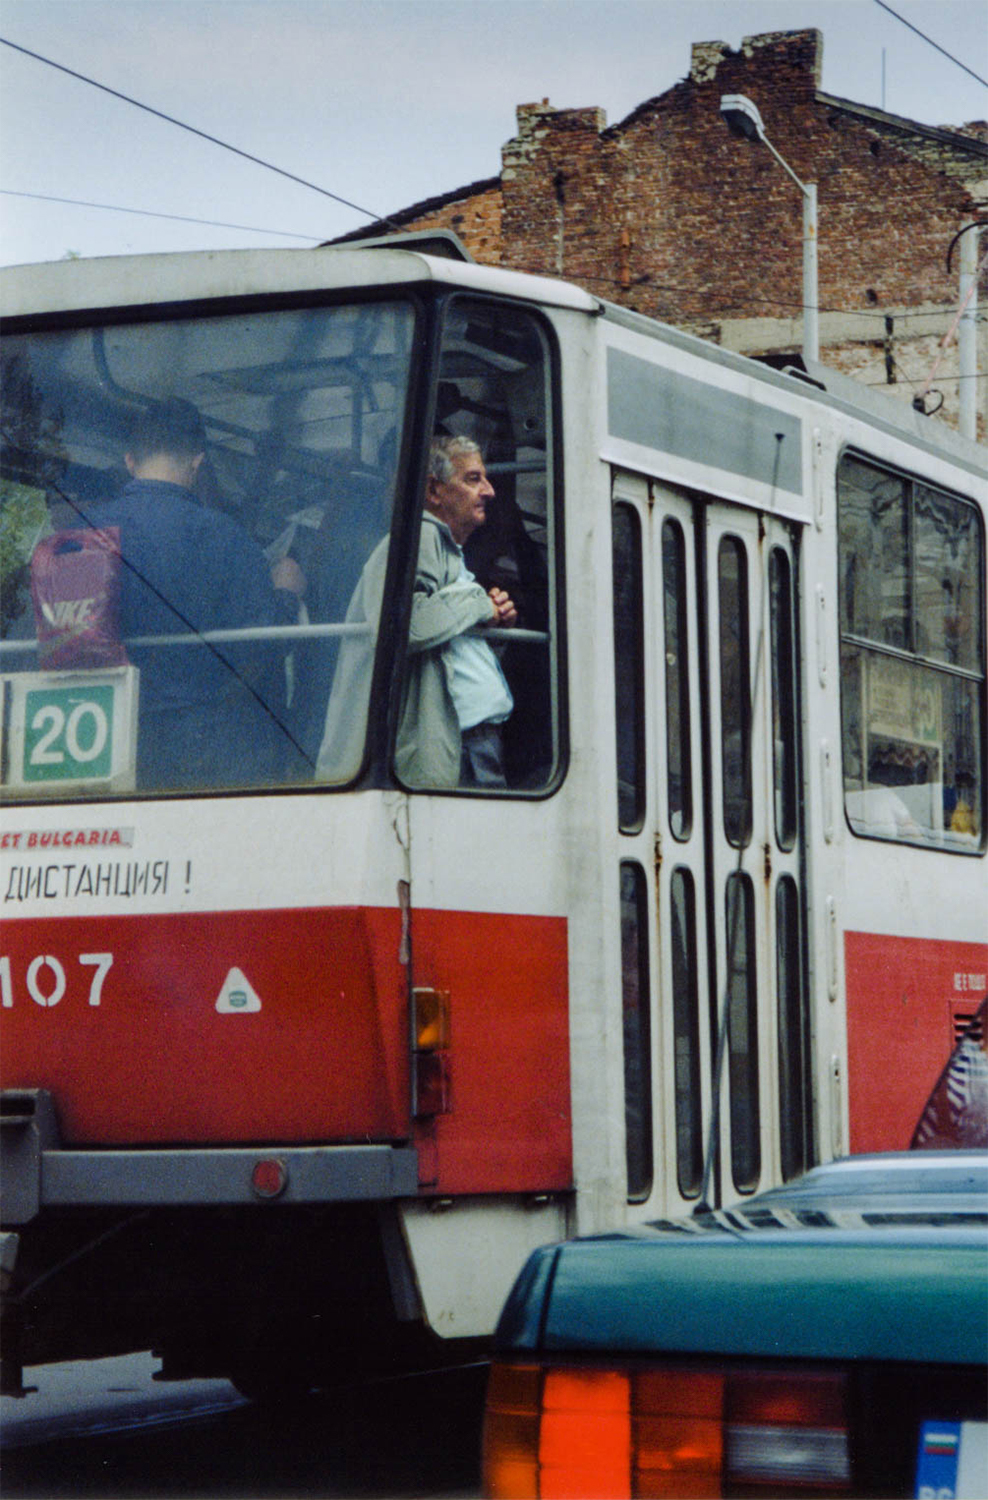 <p>A man lost in his thoughts on a tram in central Sofia.</p>